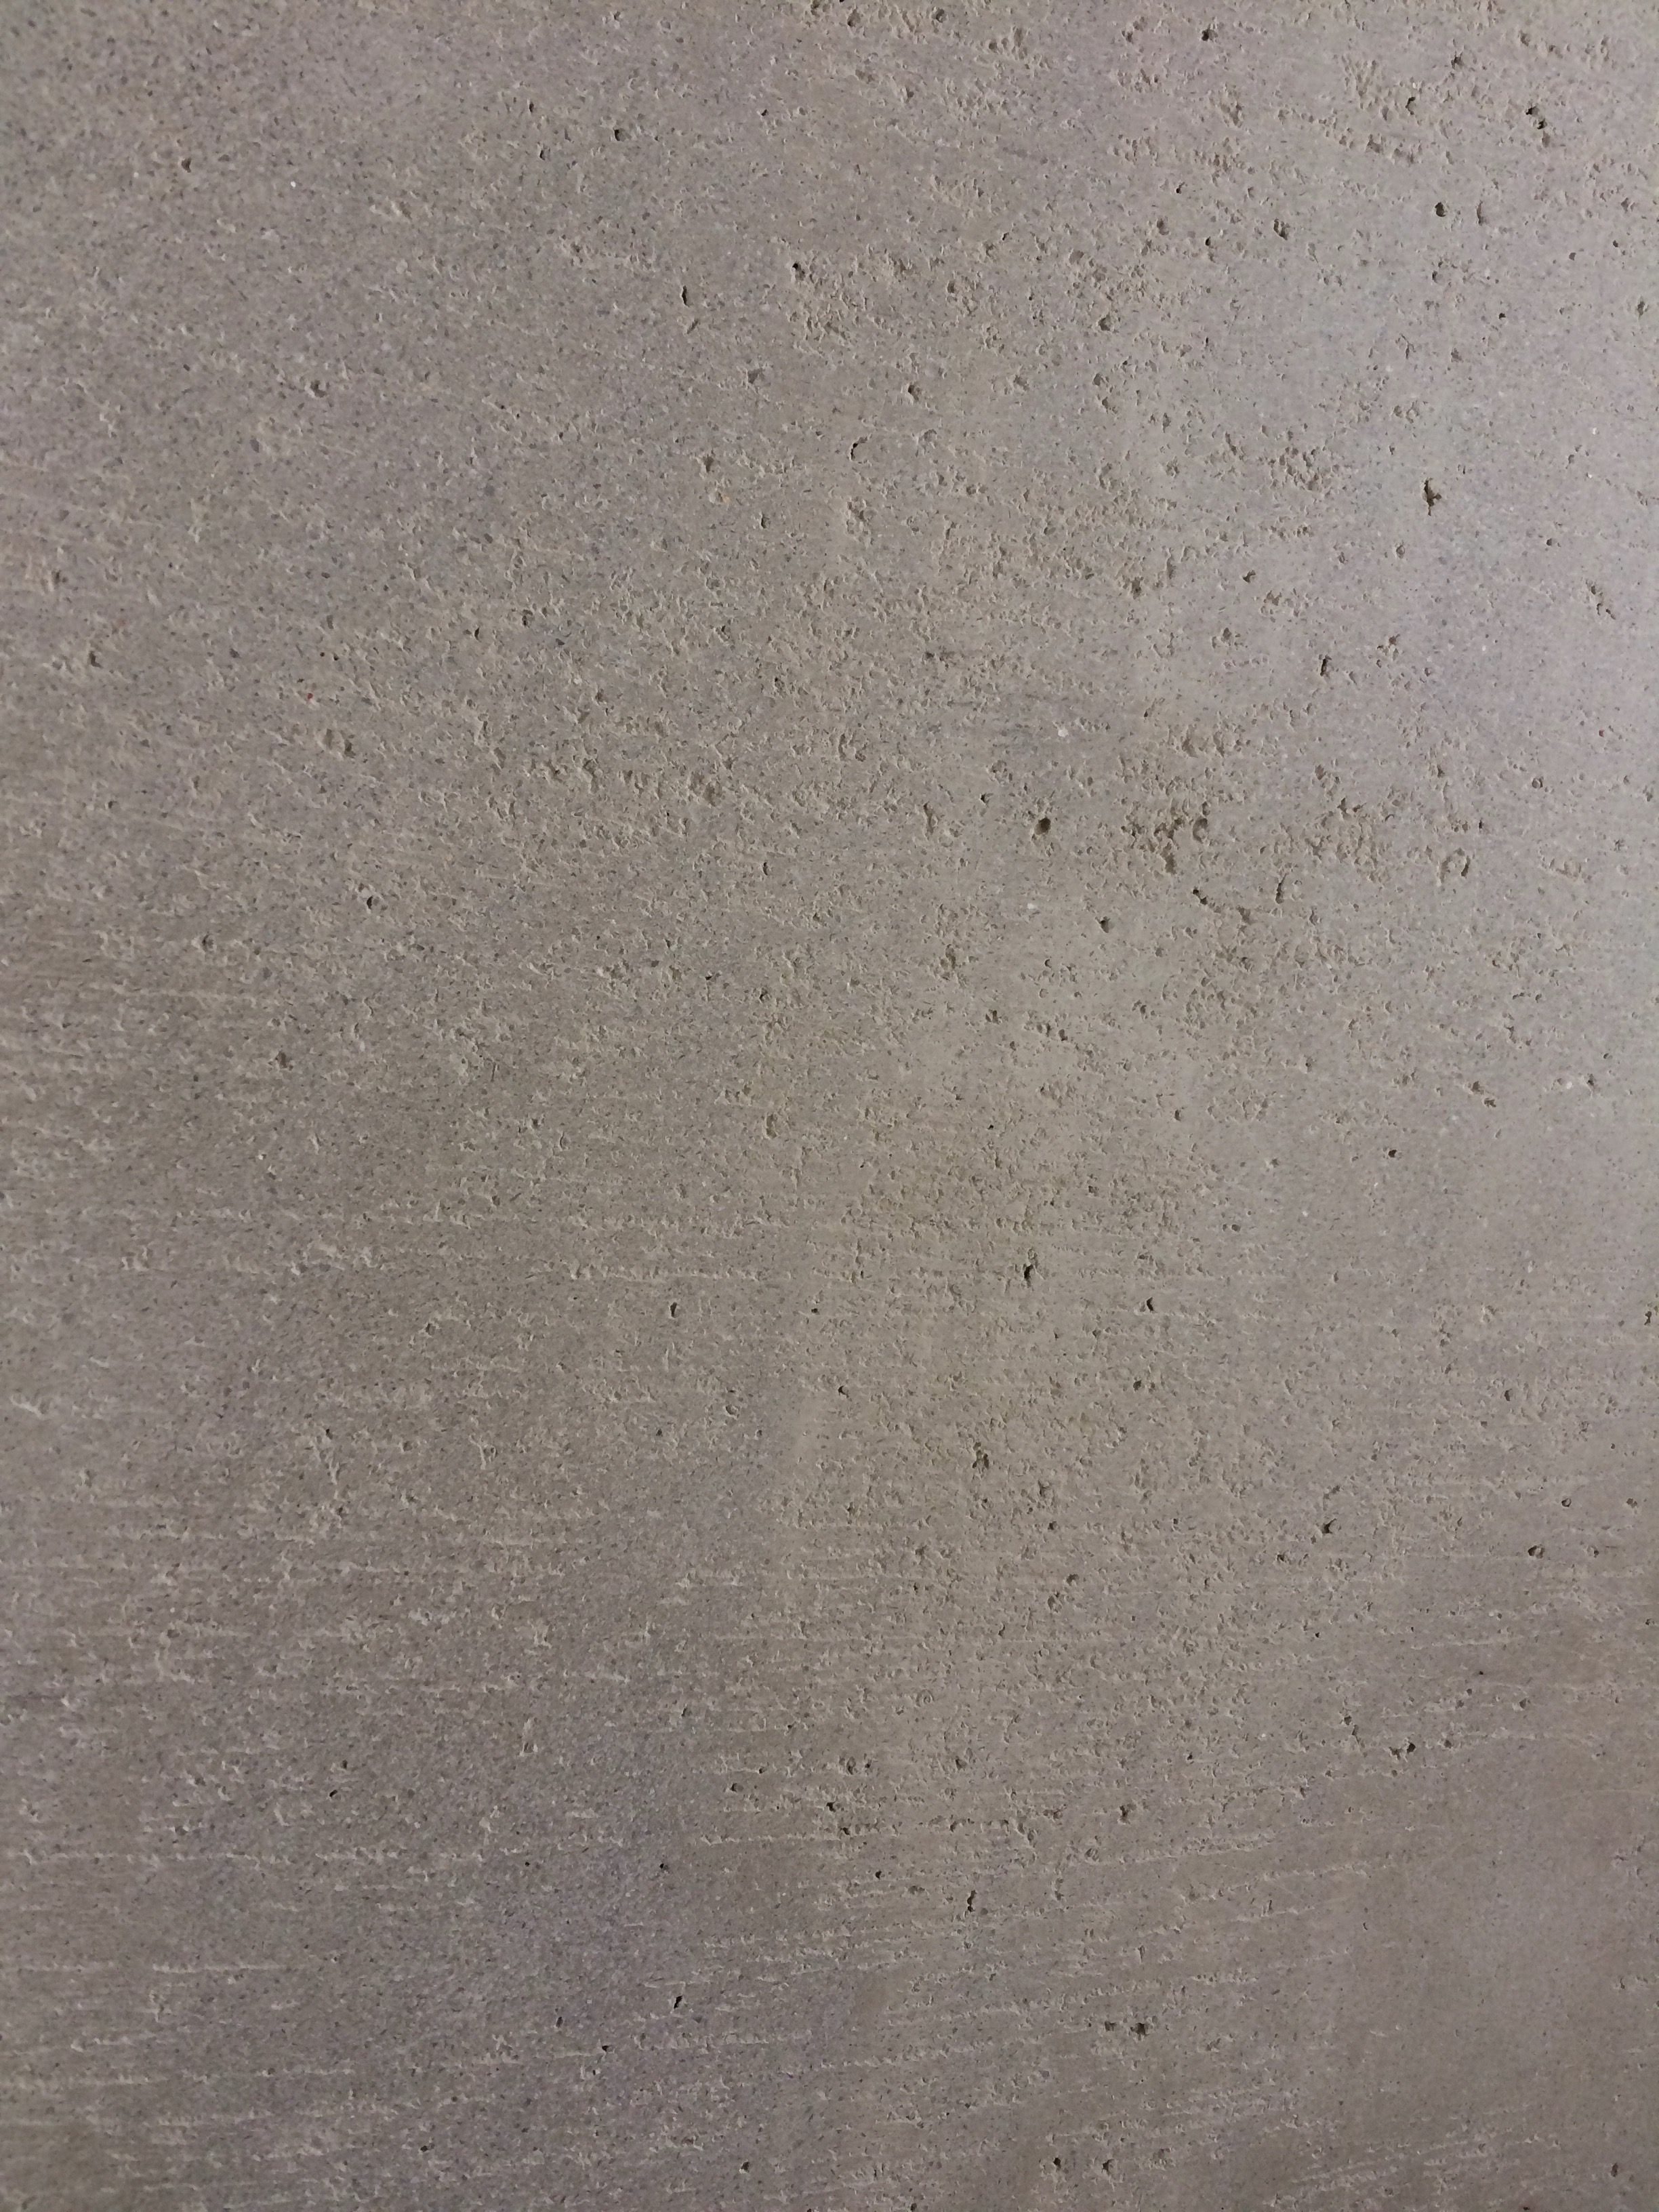 Travertine Lime Plaster Finish Adds Depth And Character To A